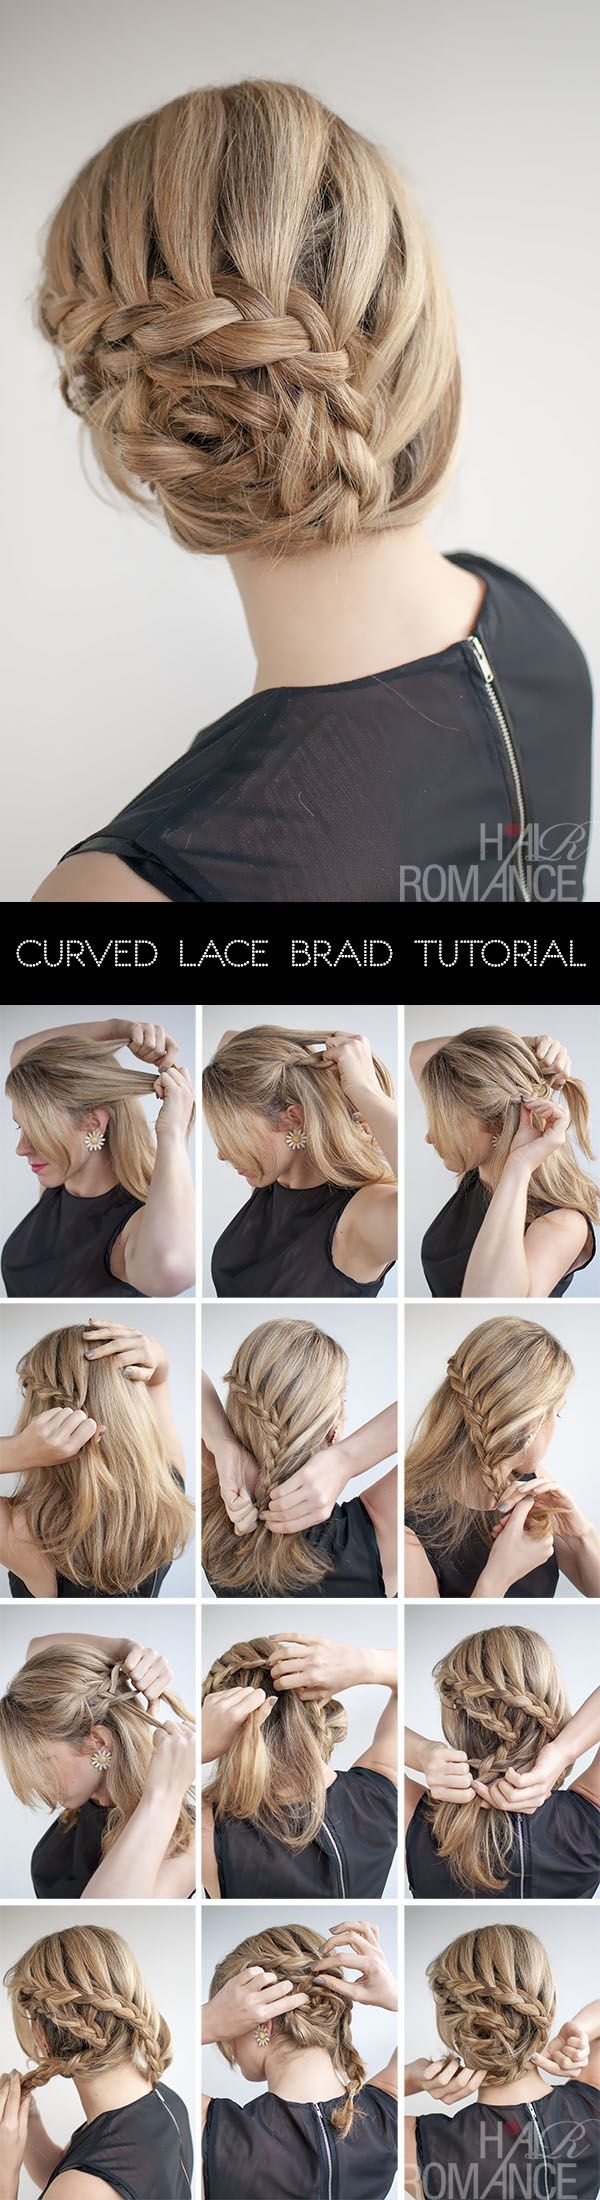 Curved lace braid updo hairstyle tutorial | Looking for a unique upstyle for an event or formal? Try this curved lace braid hairstyle. | Hair Romance